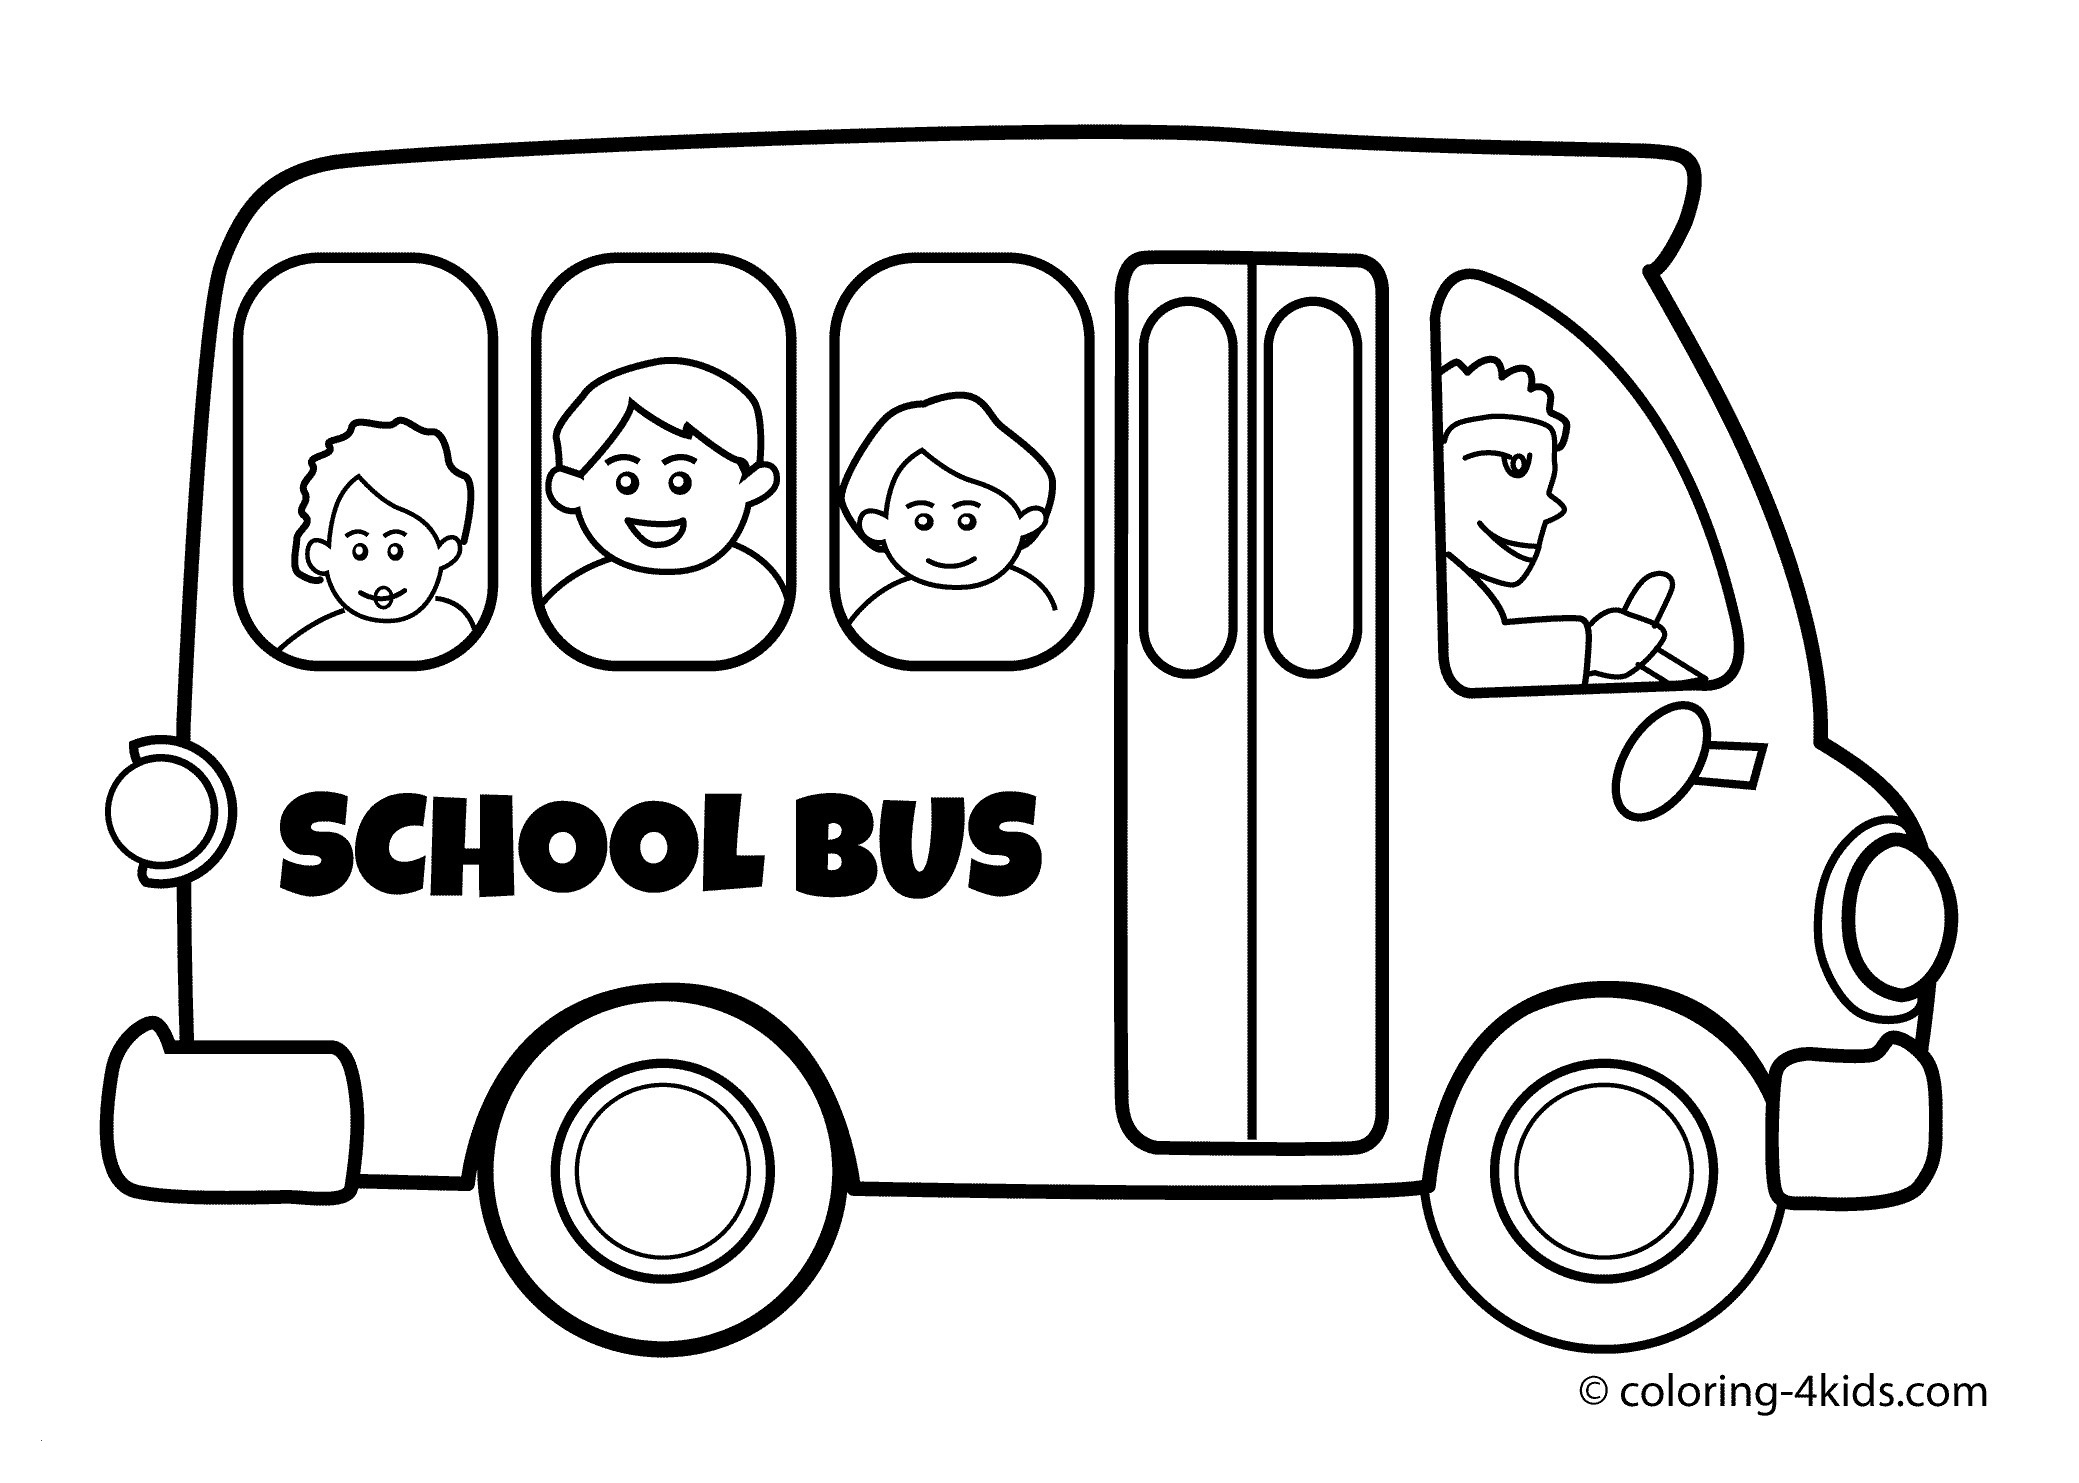 School Bus Coloring Pages Printable  Gallery 9l - Free For kids